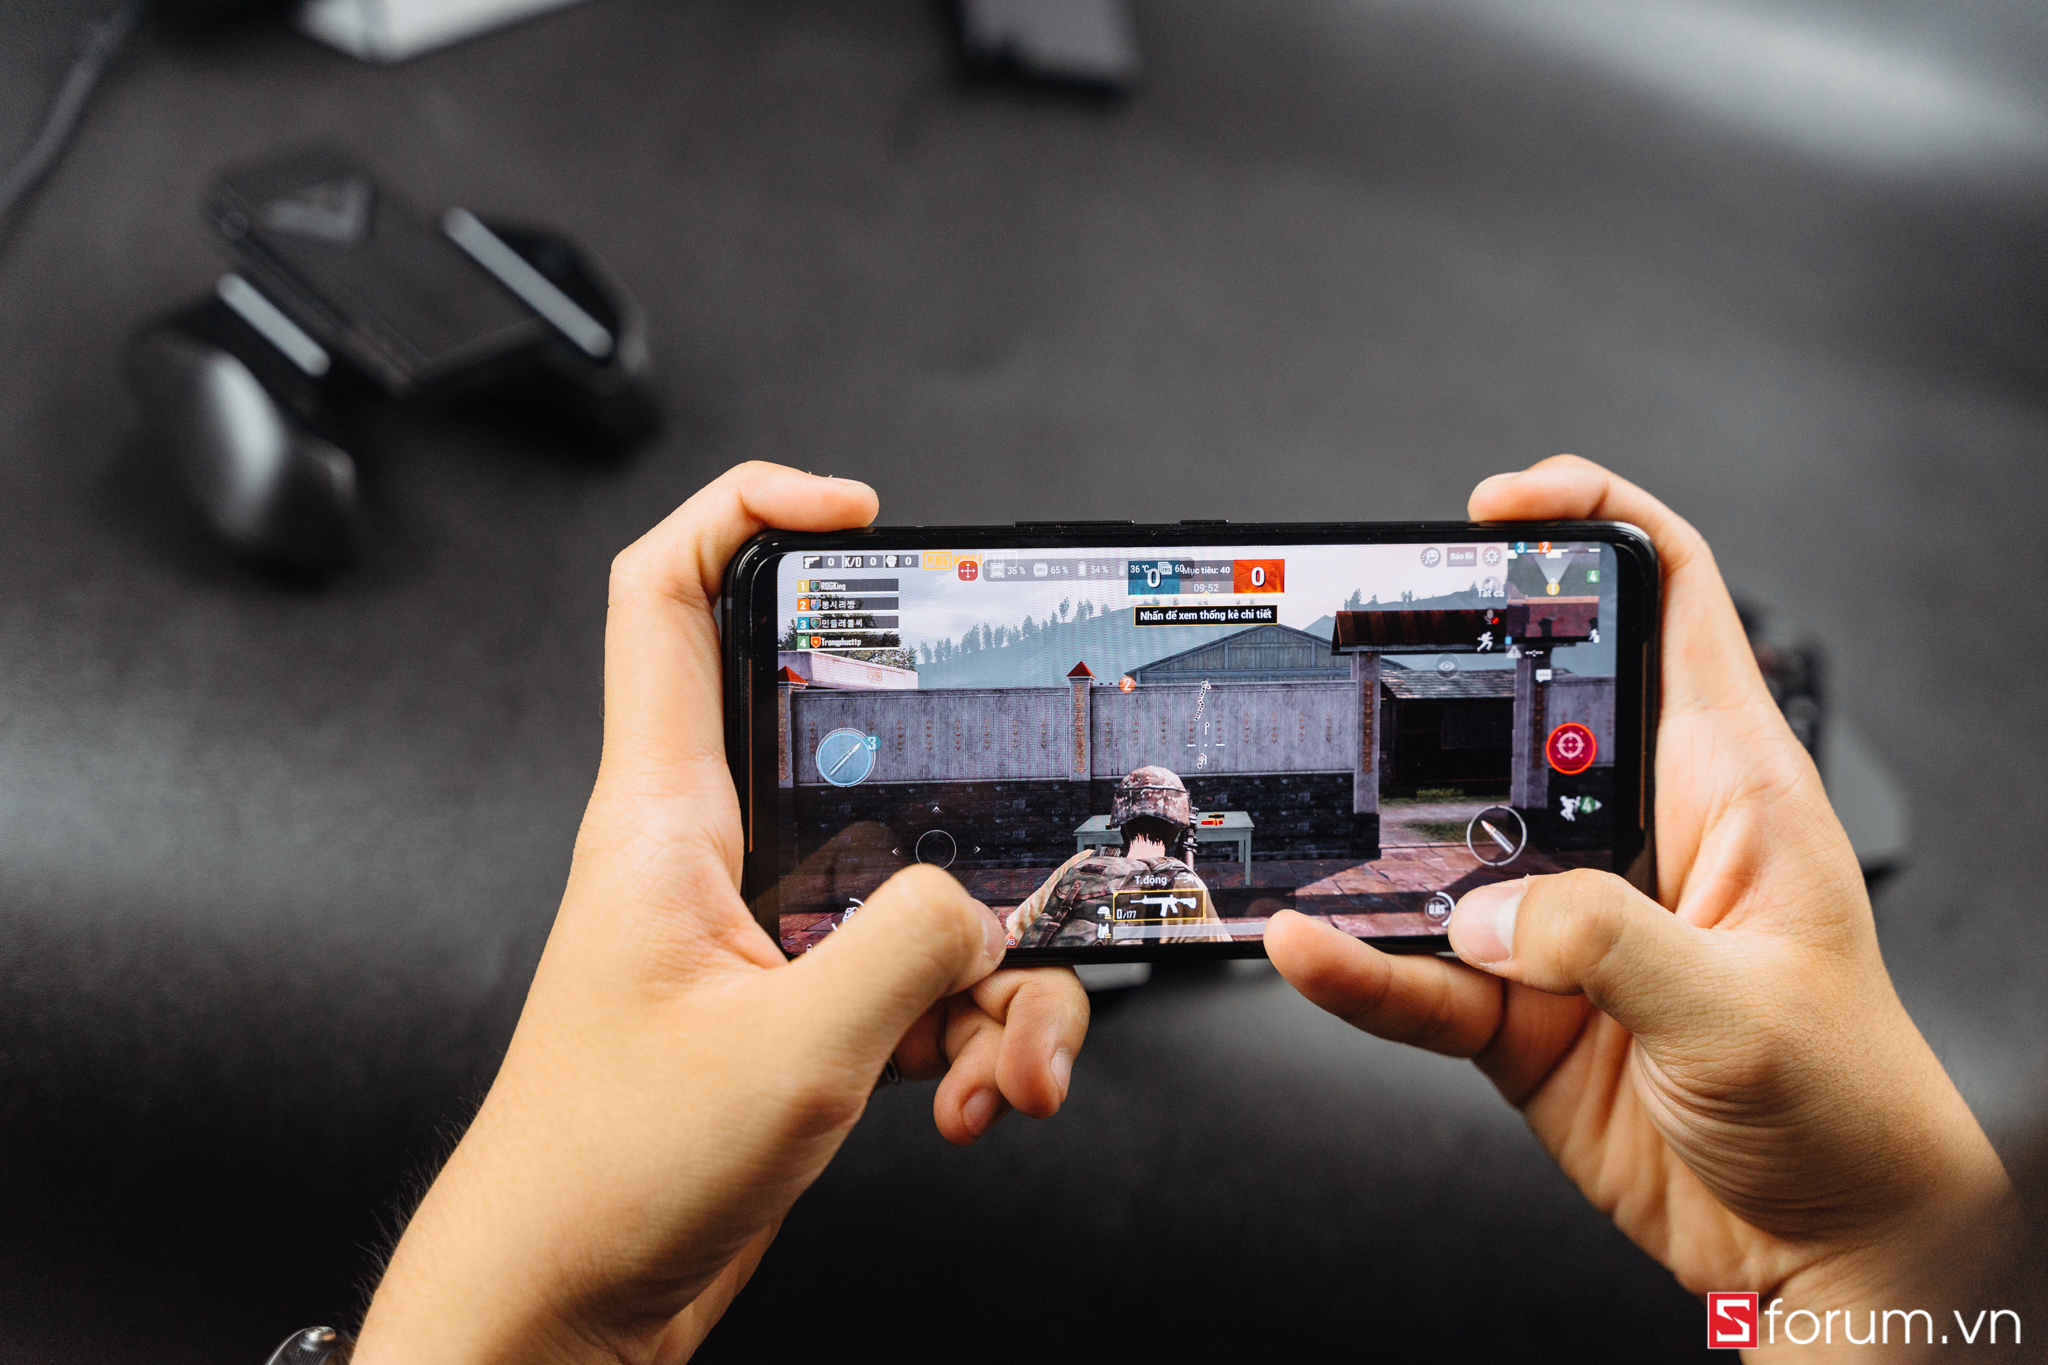 Sforum - Latest technology information page 2-2 ROG Phone 2 on sale exclusively at CellphoneS: Snapdragon 855 Plus, 12GB RAM, 120Hz screen, extreme gaming